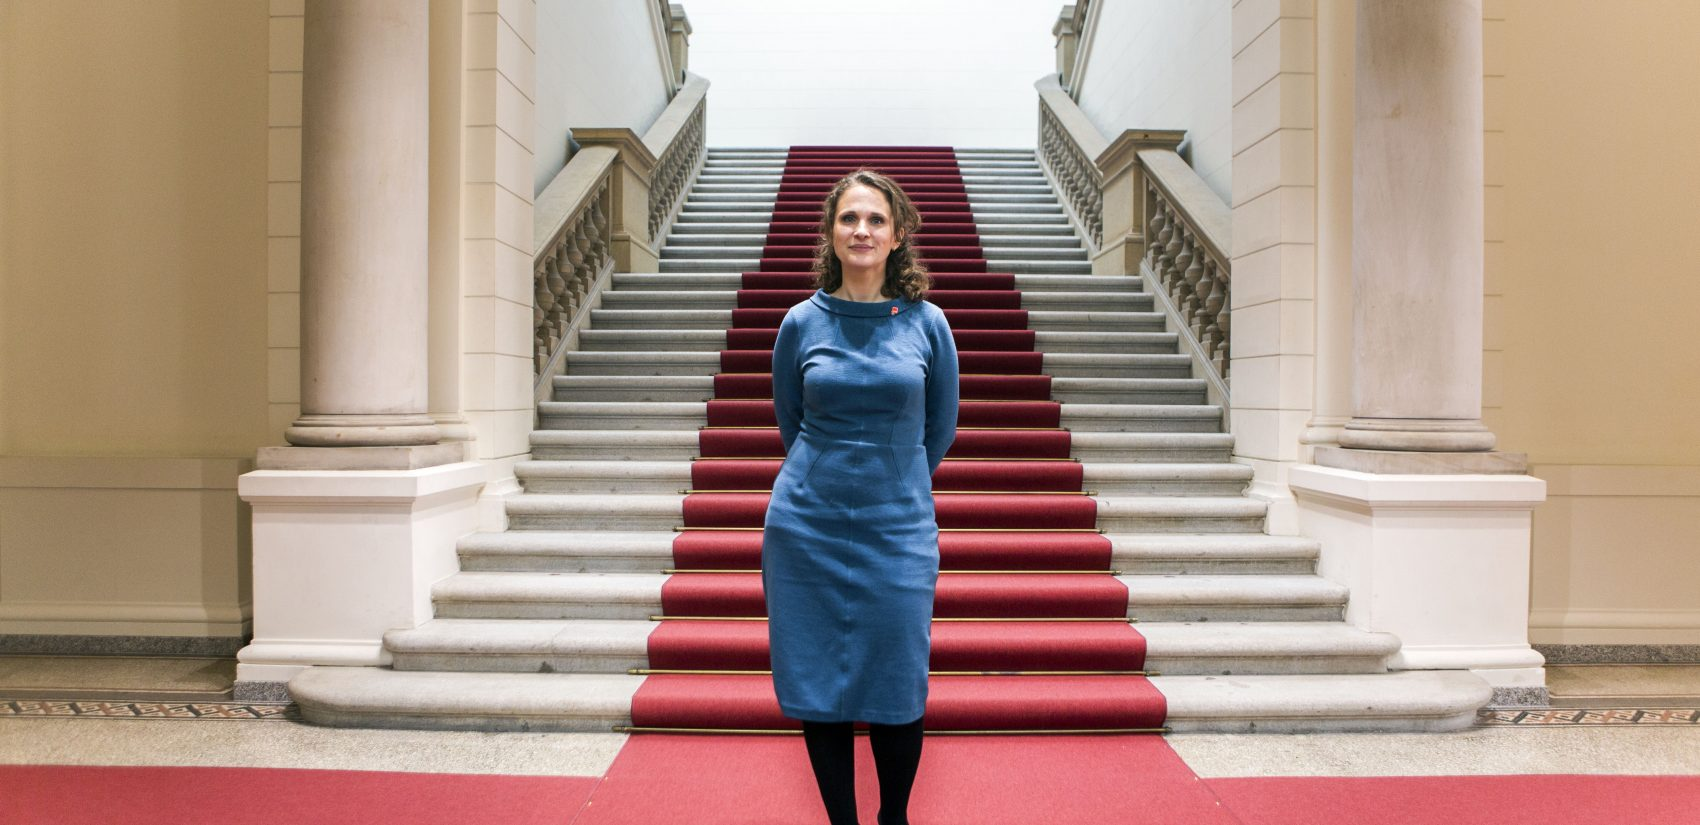 </b> Maja Lasić represents Wedding in Berlin's Parliament for the Social Democrats, the county's mainstream left-wing party. (Jessica Kourkounis/For Keystone Crossroads)